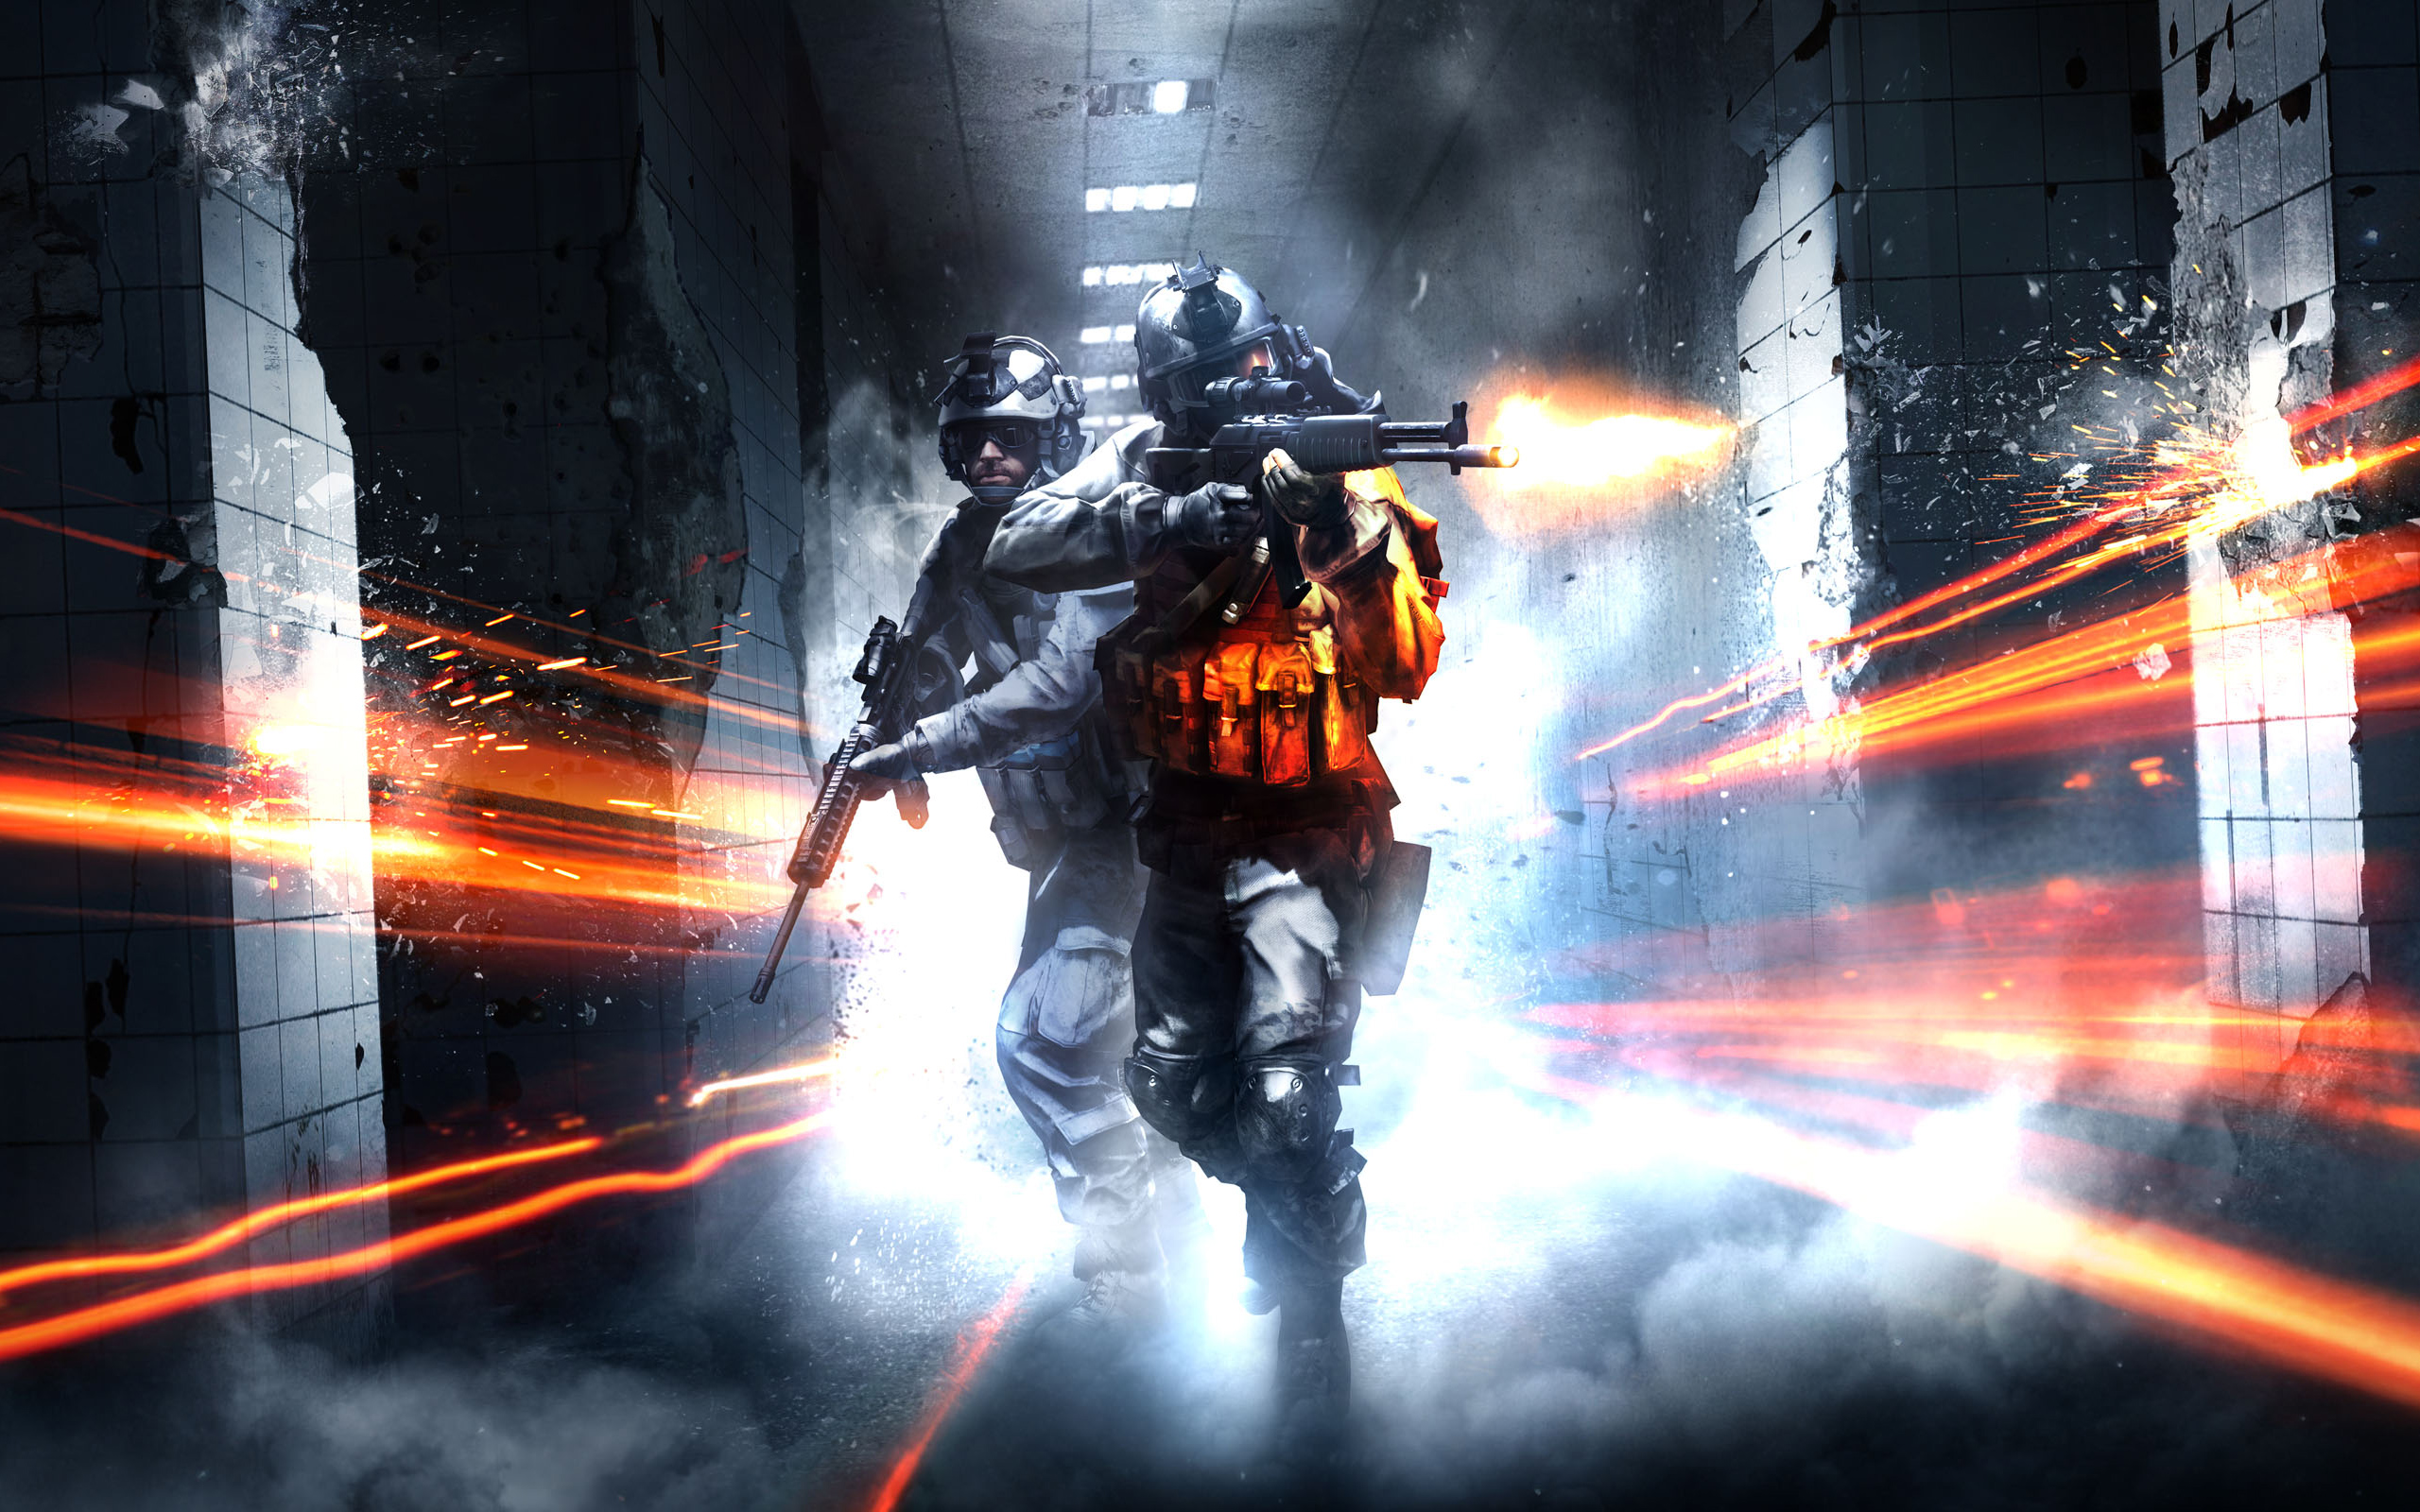 Battlefield 3 Full HD Wallpaper And Background Image